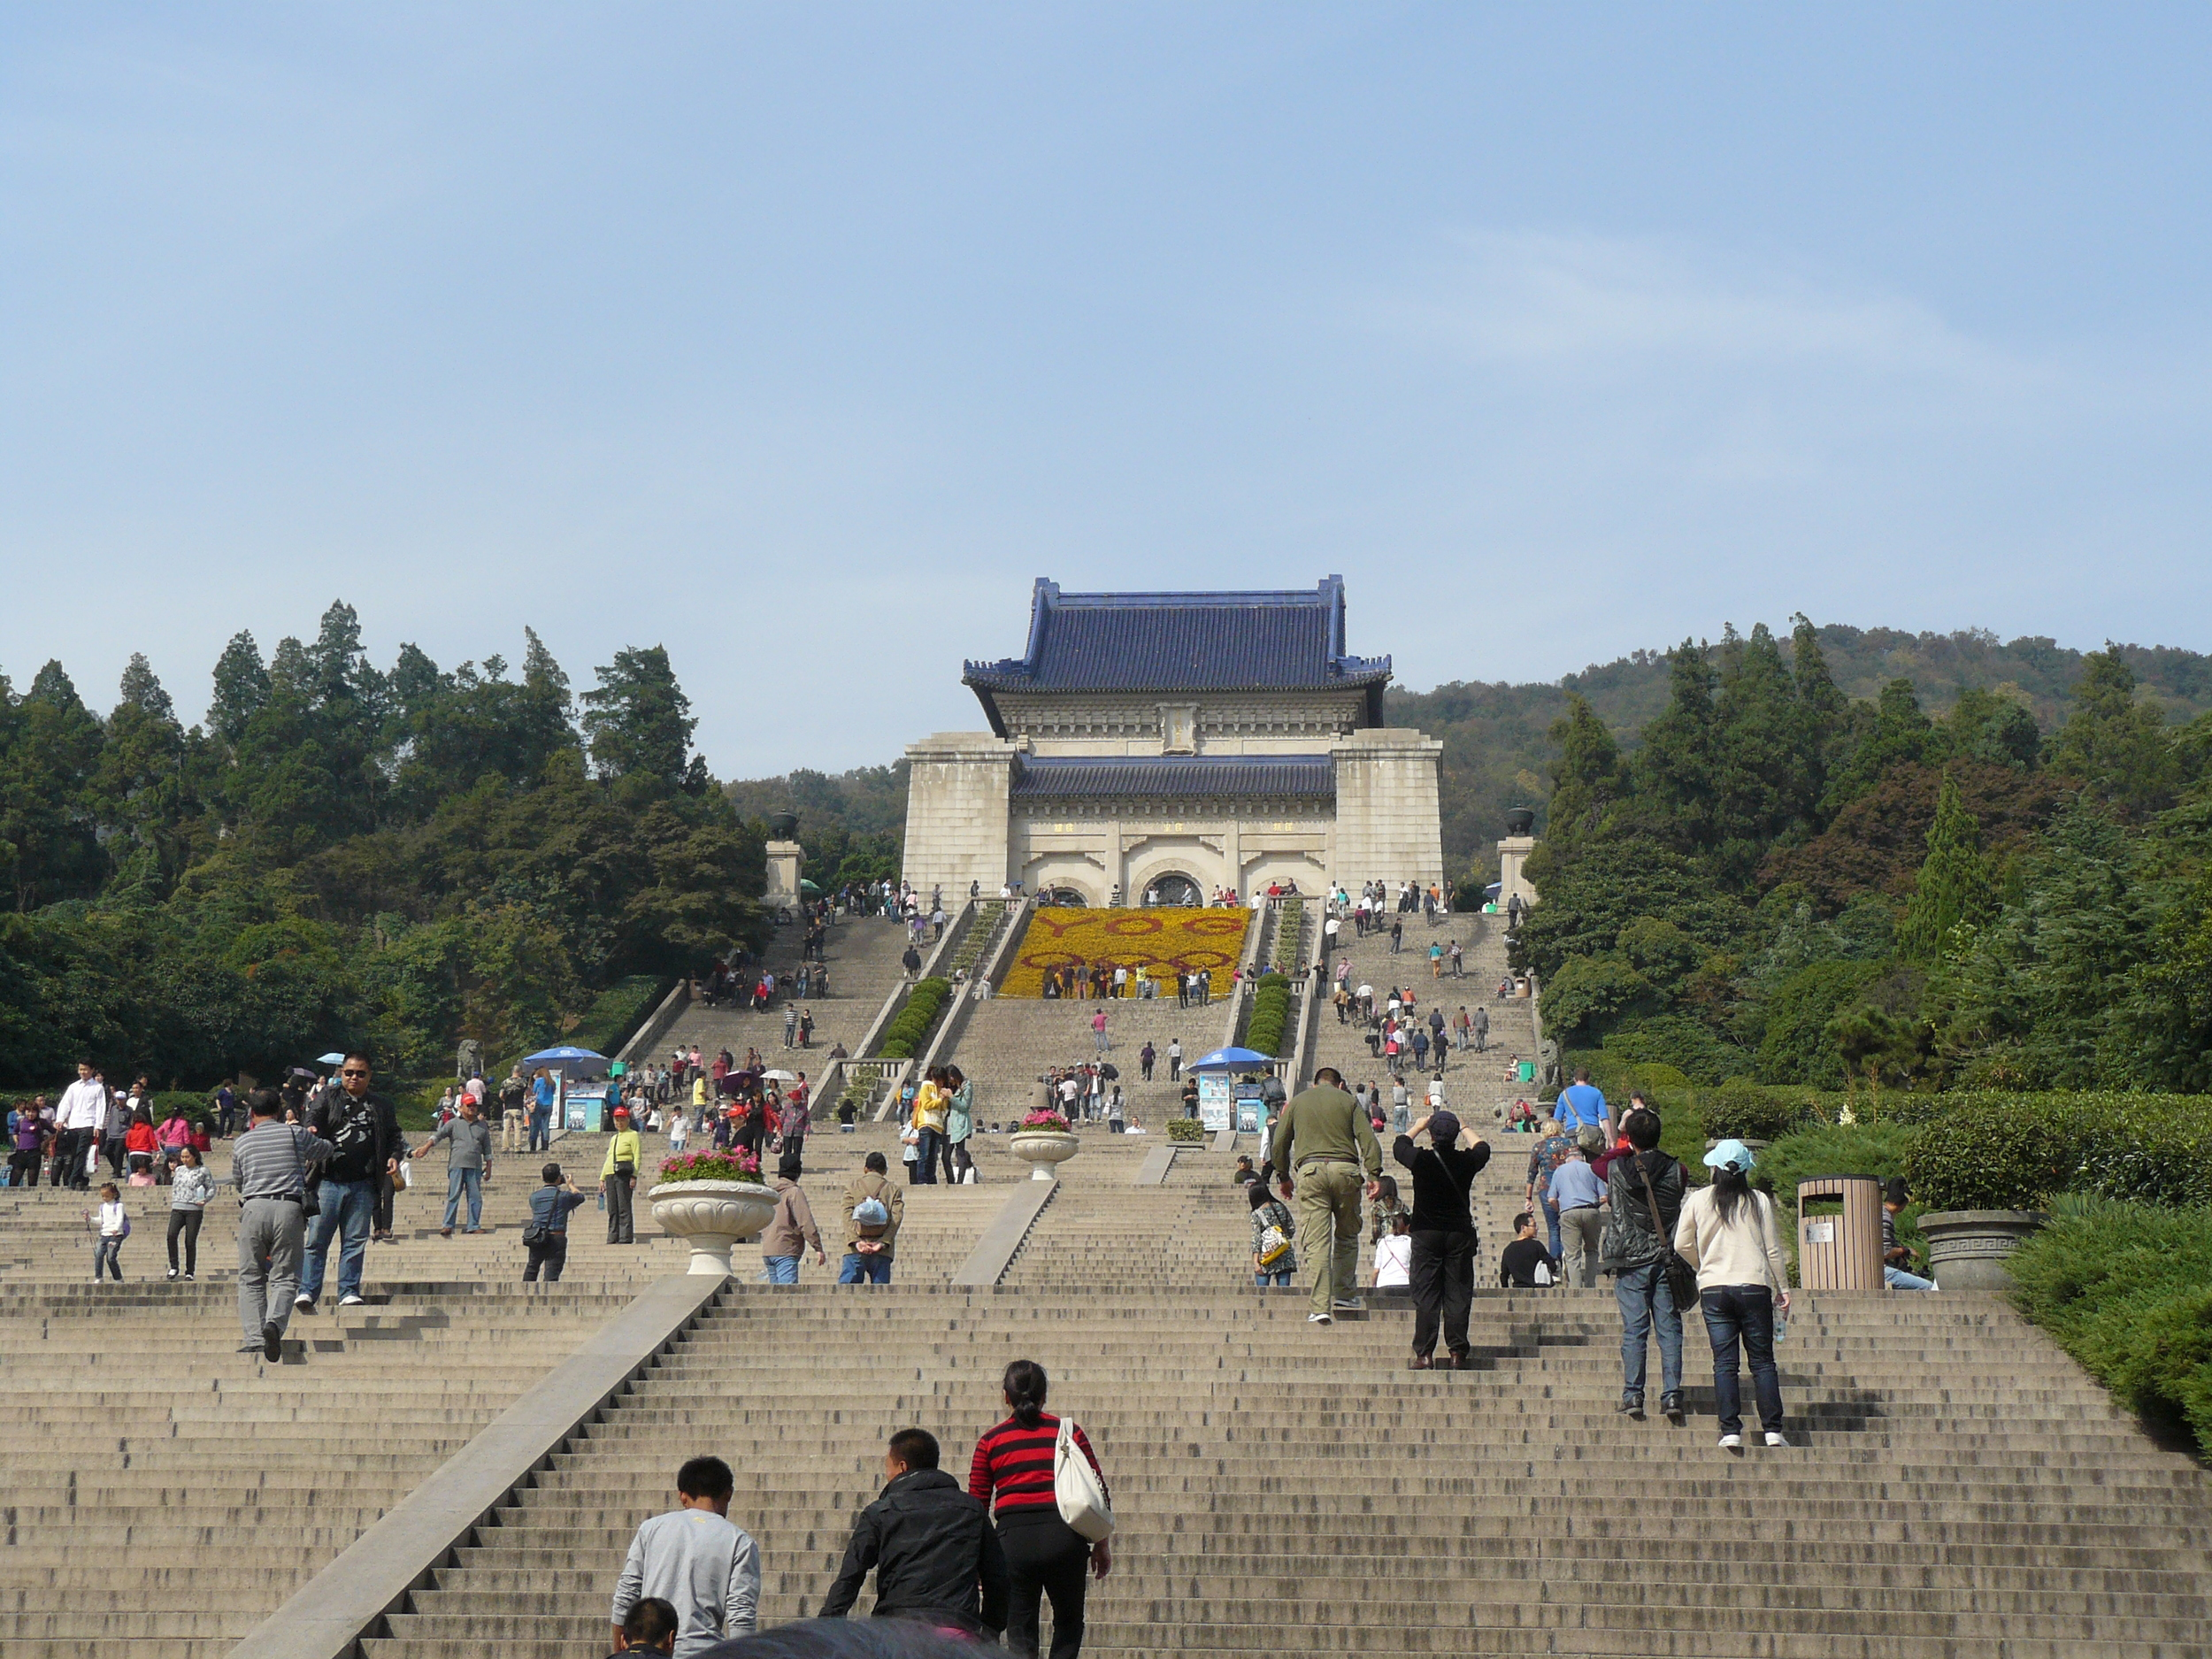 The Mausoleum, and all its stairs (!)  of  Dr. Sun Yat-Sen